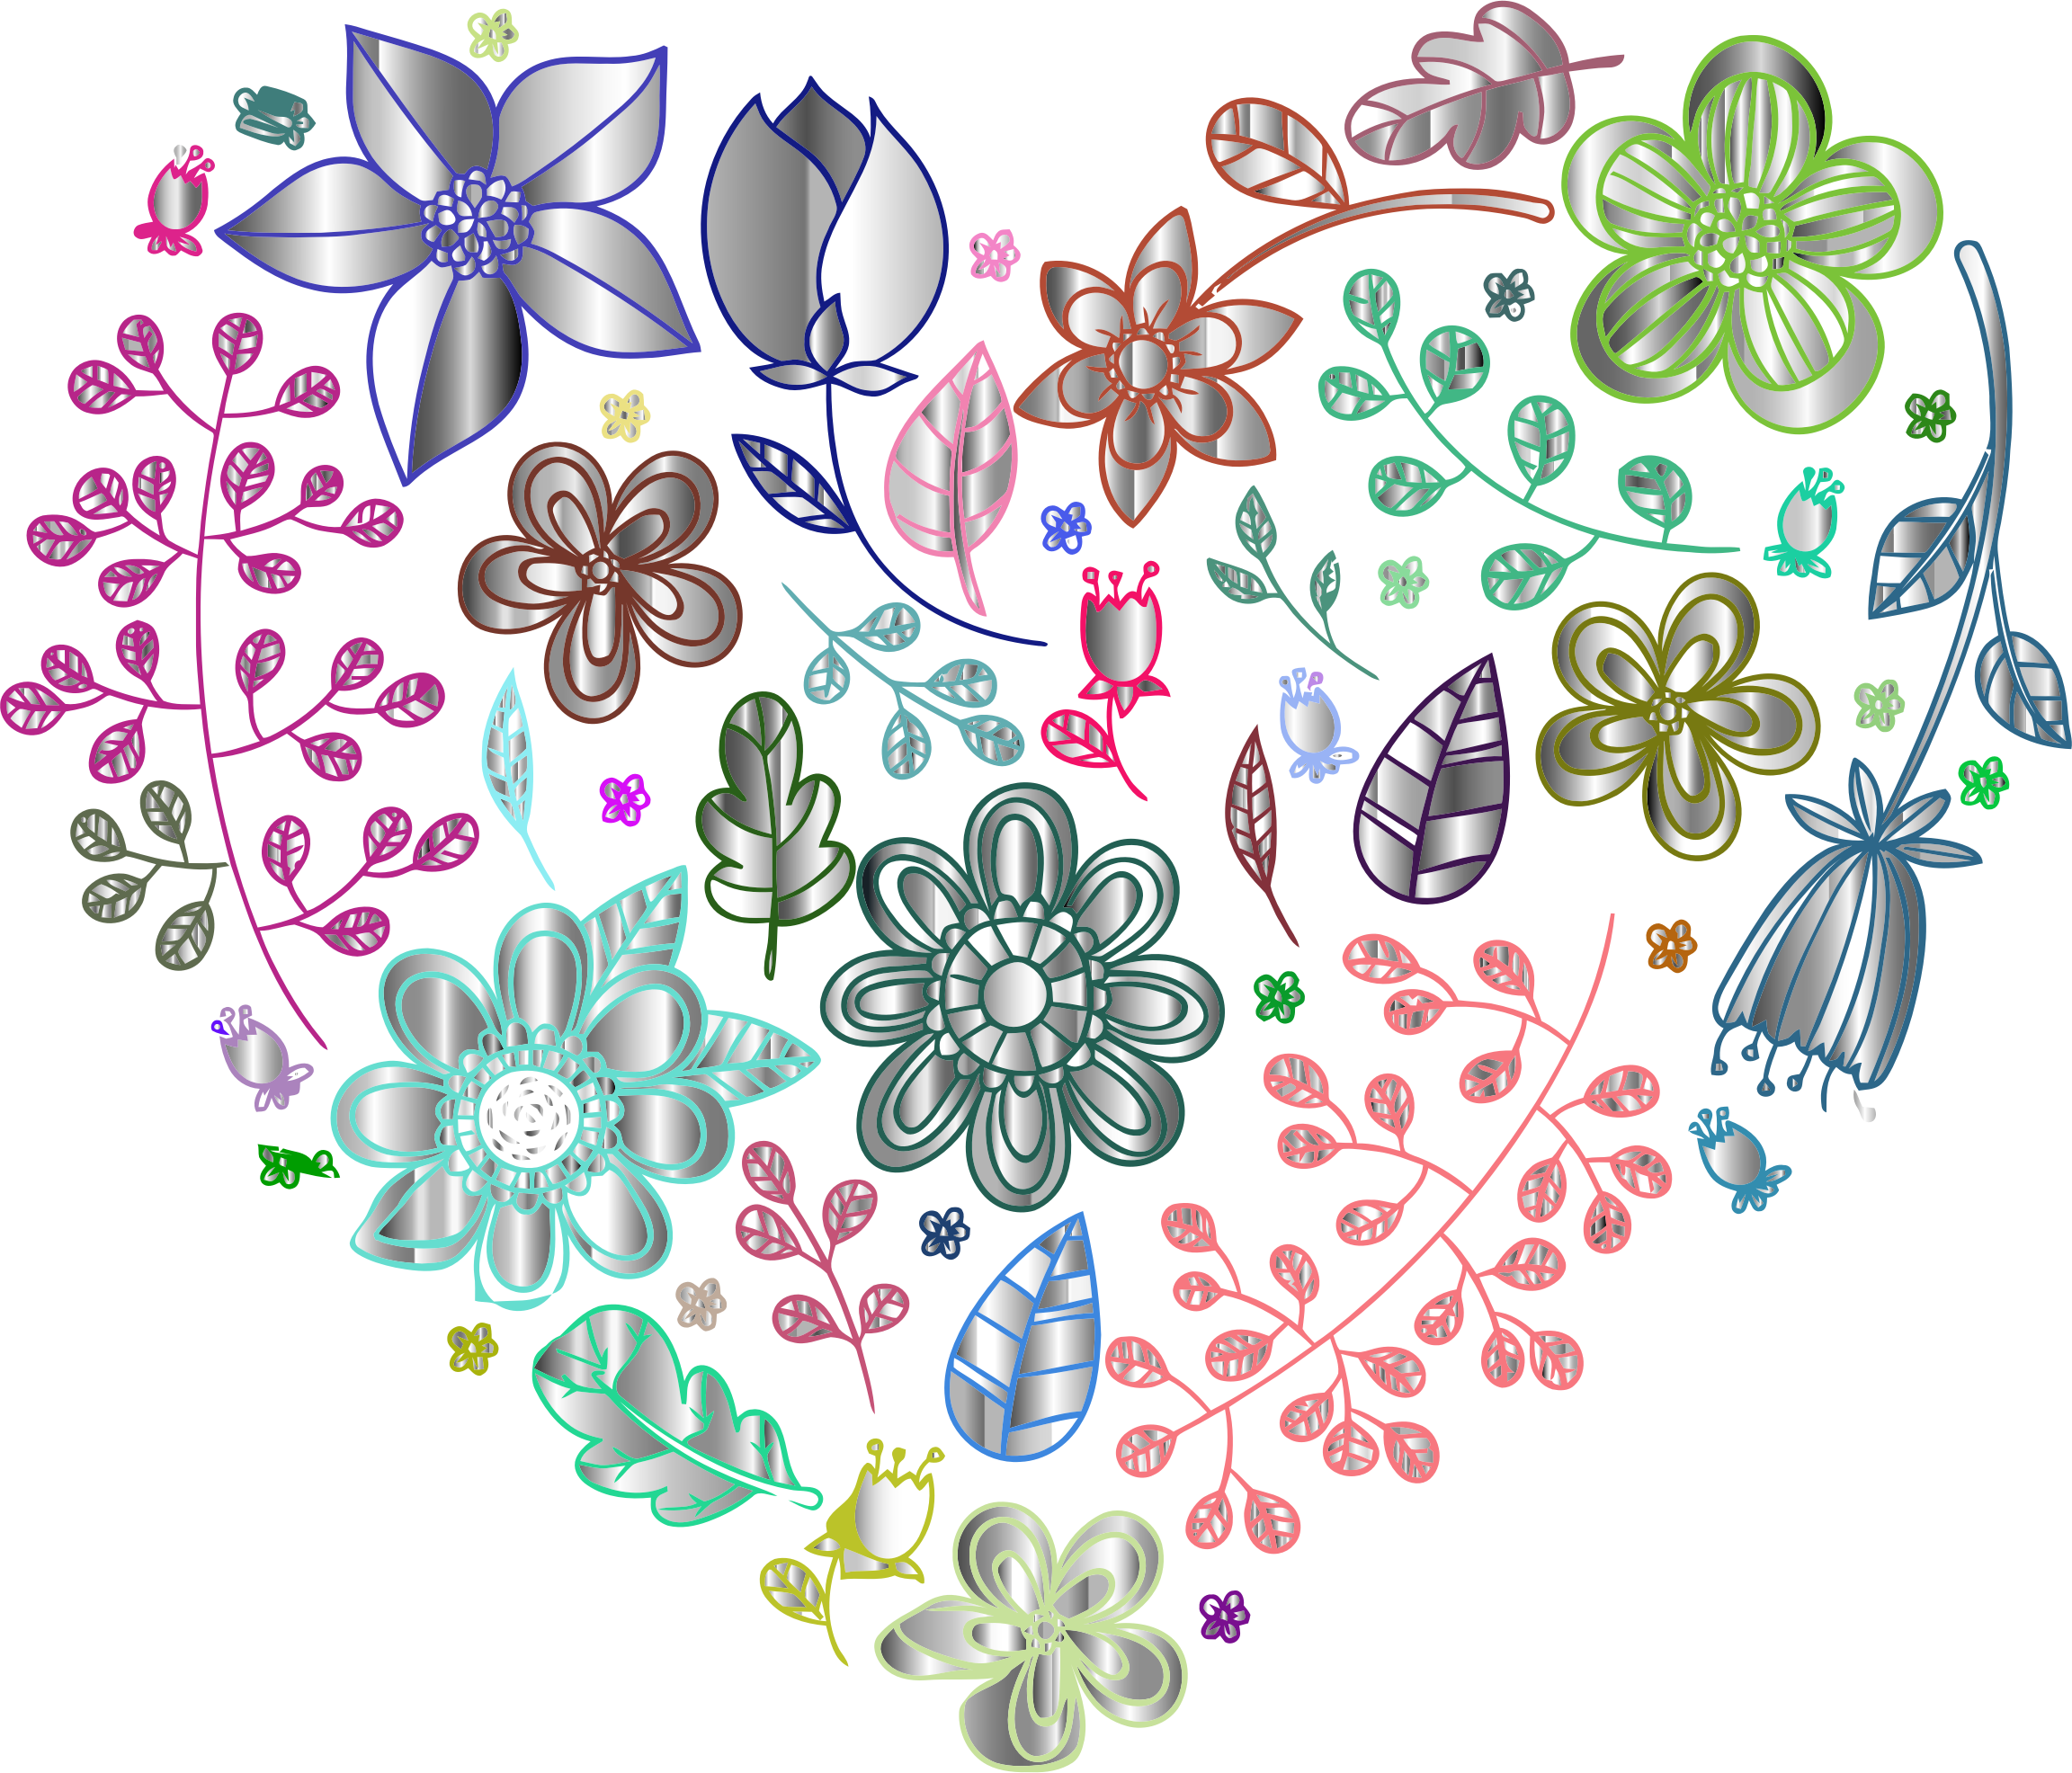 Prismatic Psychedelic Floral Heart 3 No Background by GDJ